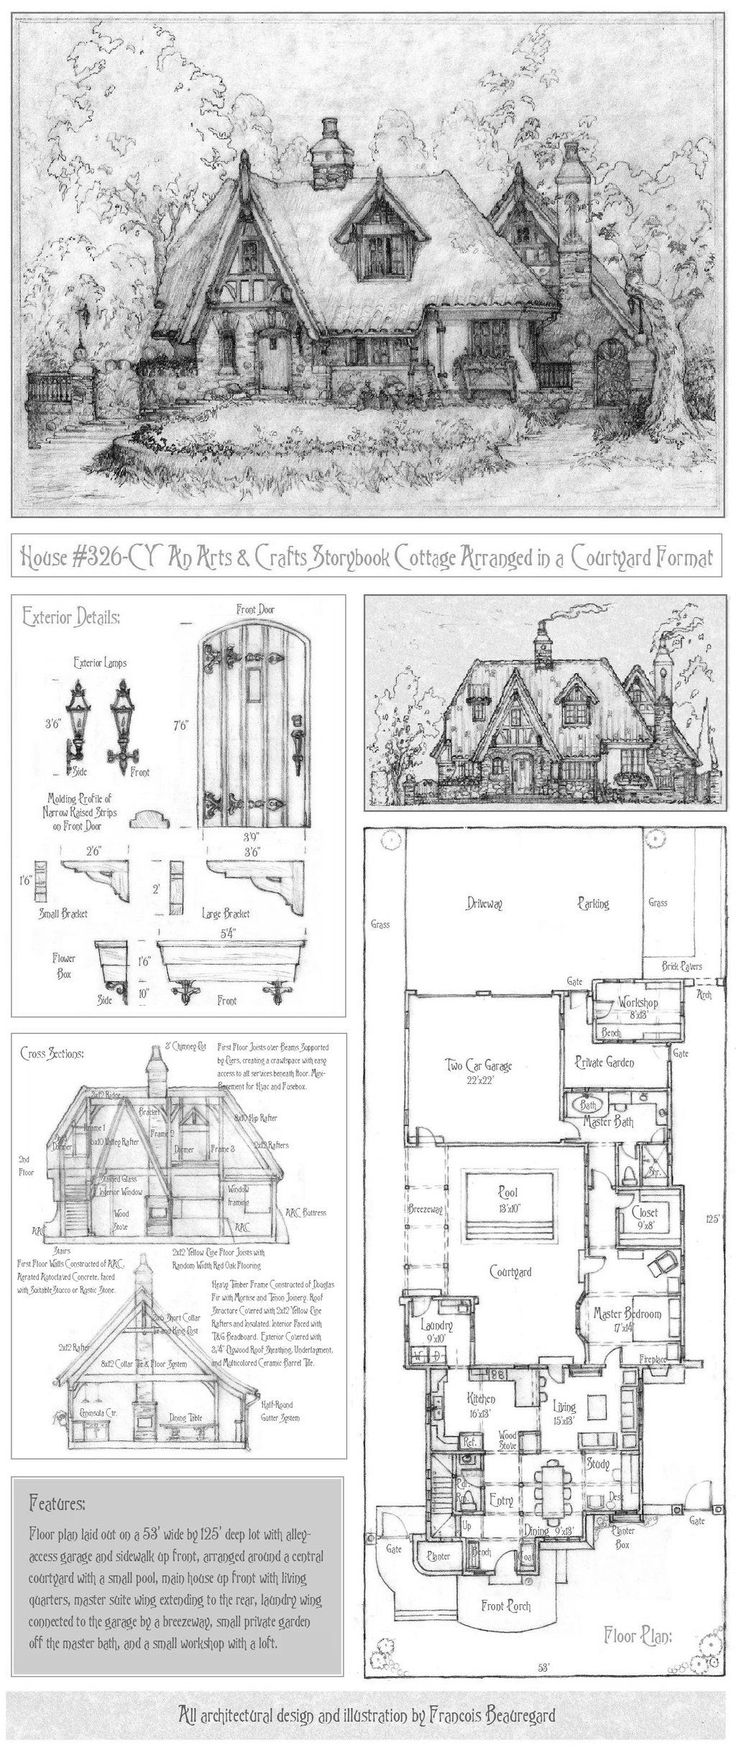 17 Best images about English Cottages House Plans Design on